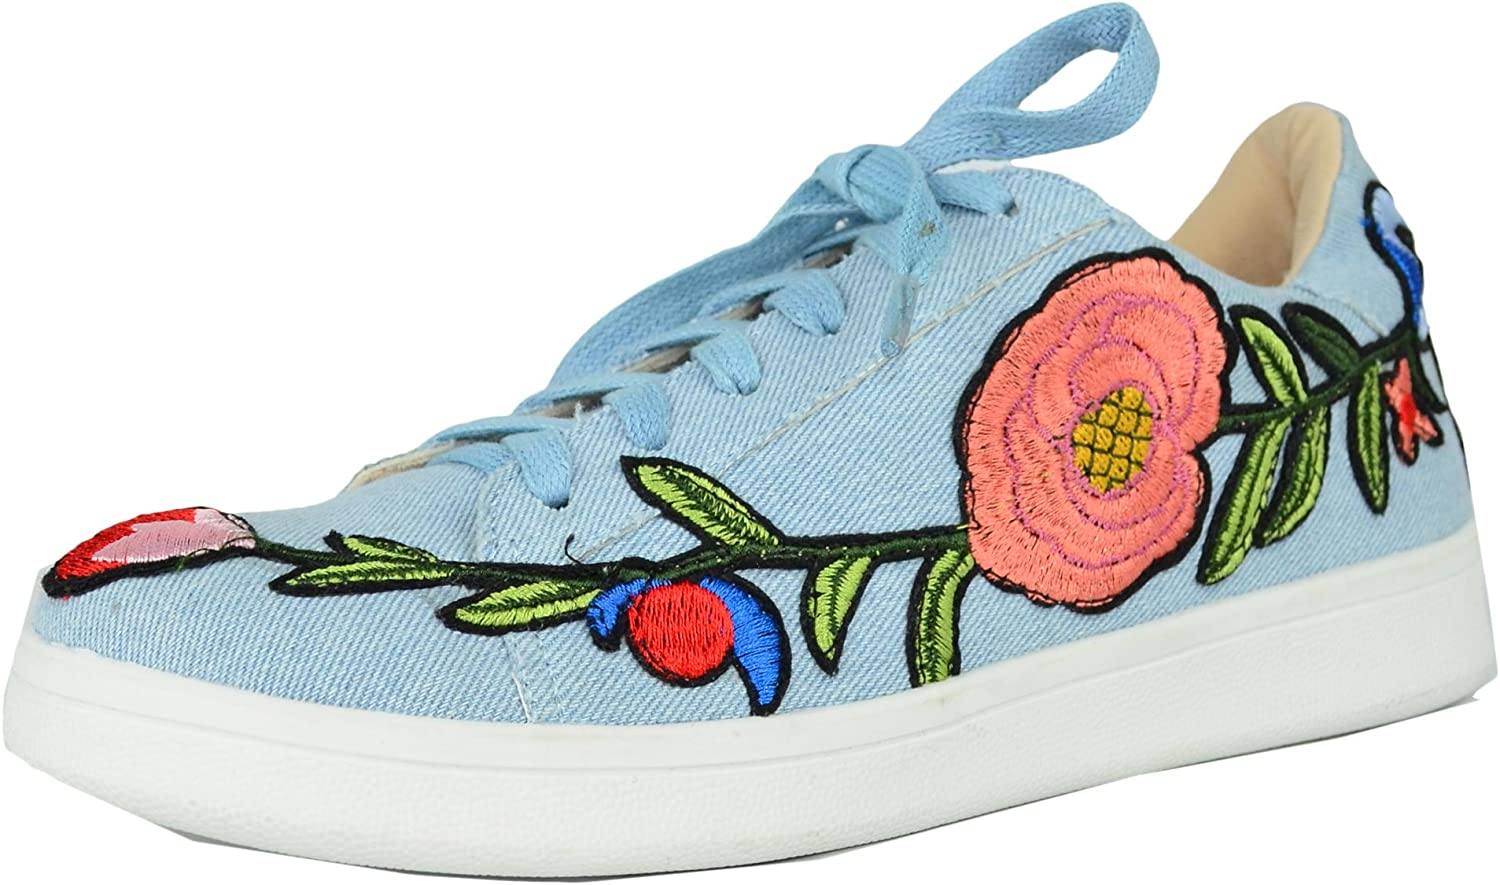 Chase & Chloe Women's Floral Embroidered Platform Fashion Sneakers